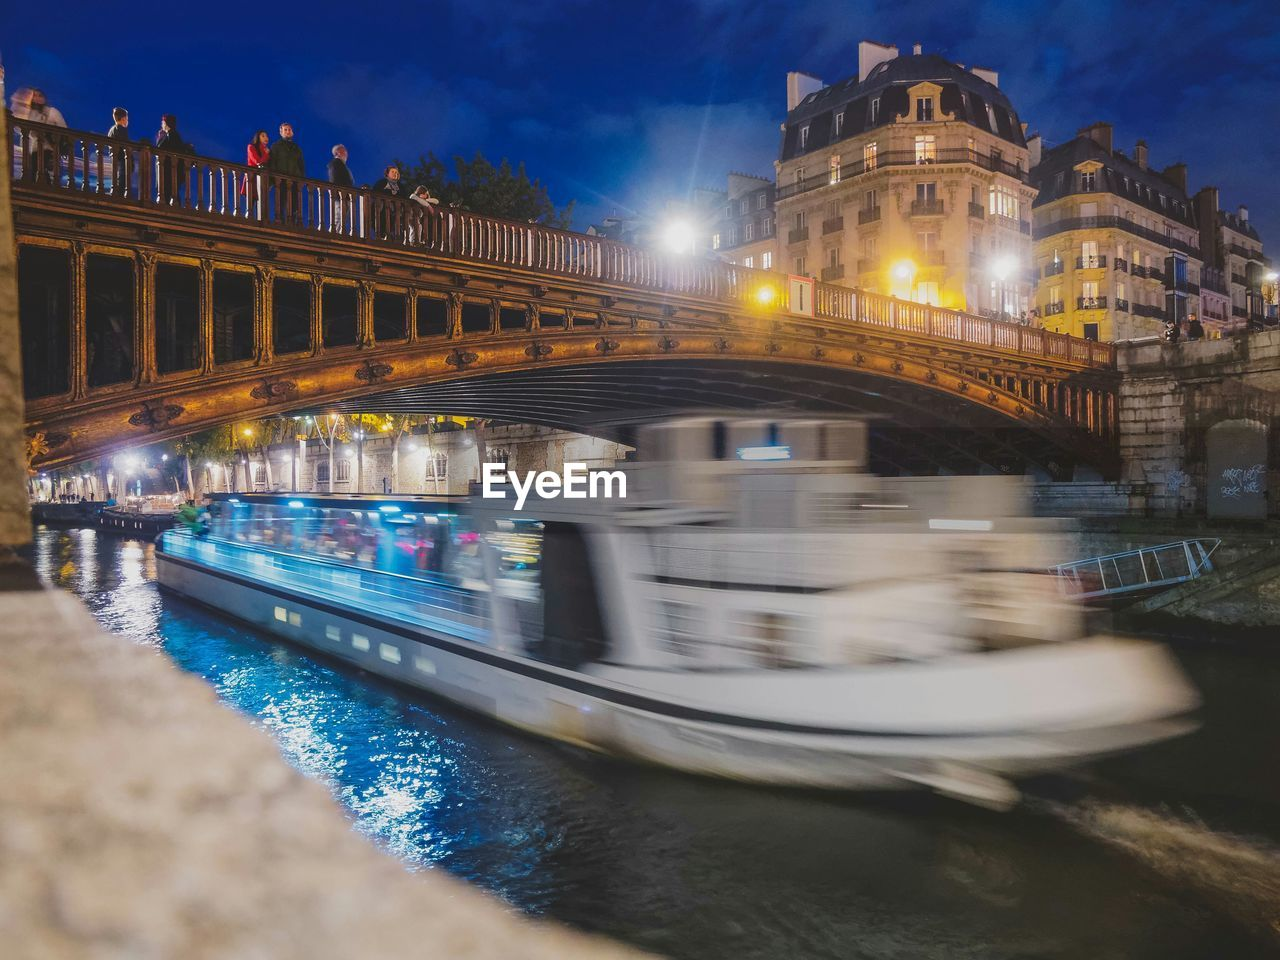 architecture, built structure, transportation, water, building exterior, illuminated, outdoors, night, waterfront, bridge - man made structure, mode of transport, nautical vessel, travel destinations, river, no people, sky, nature